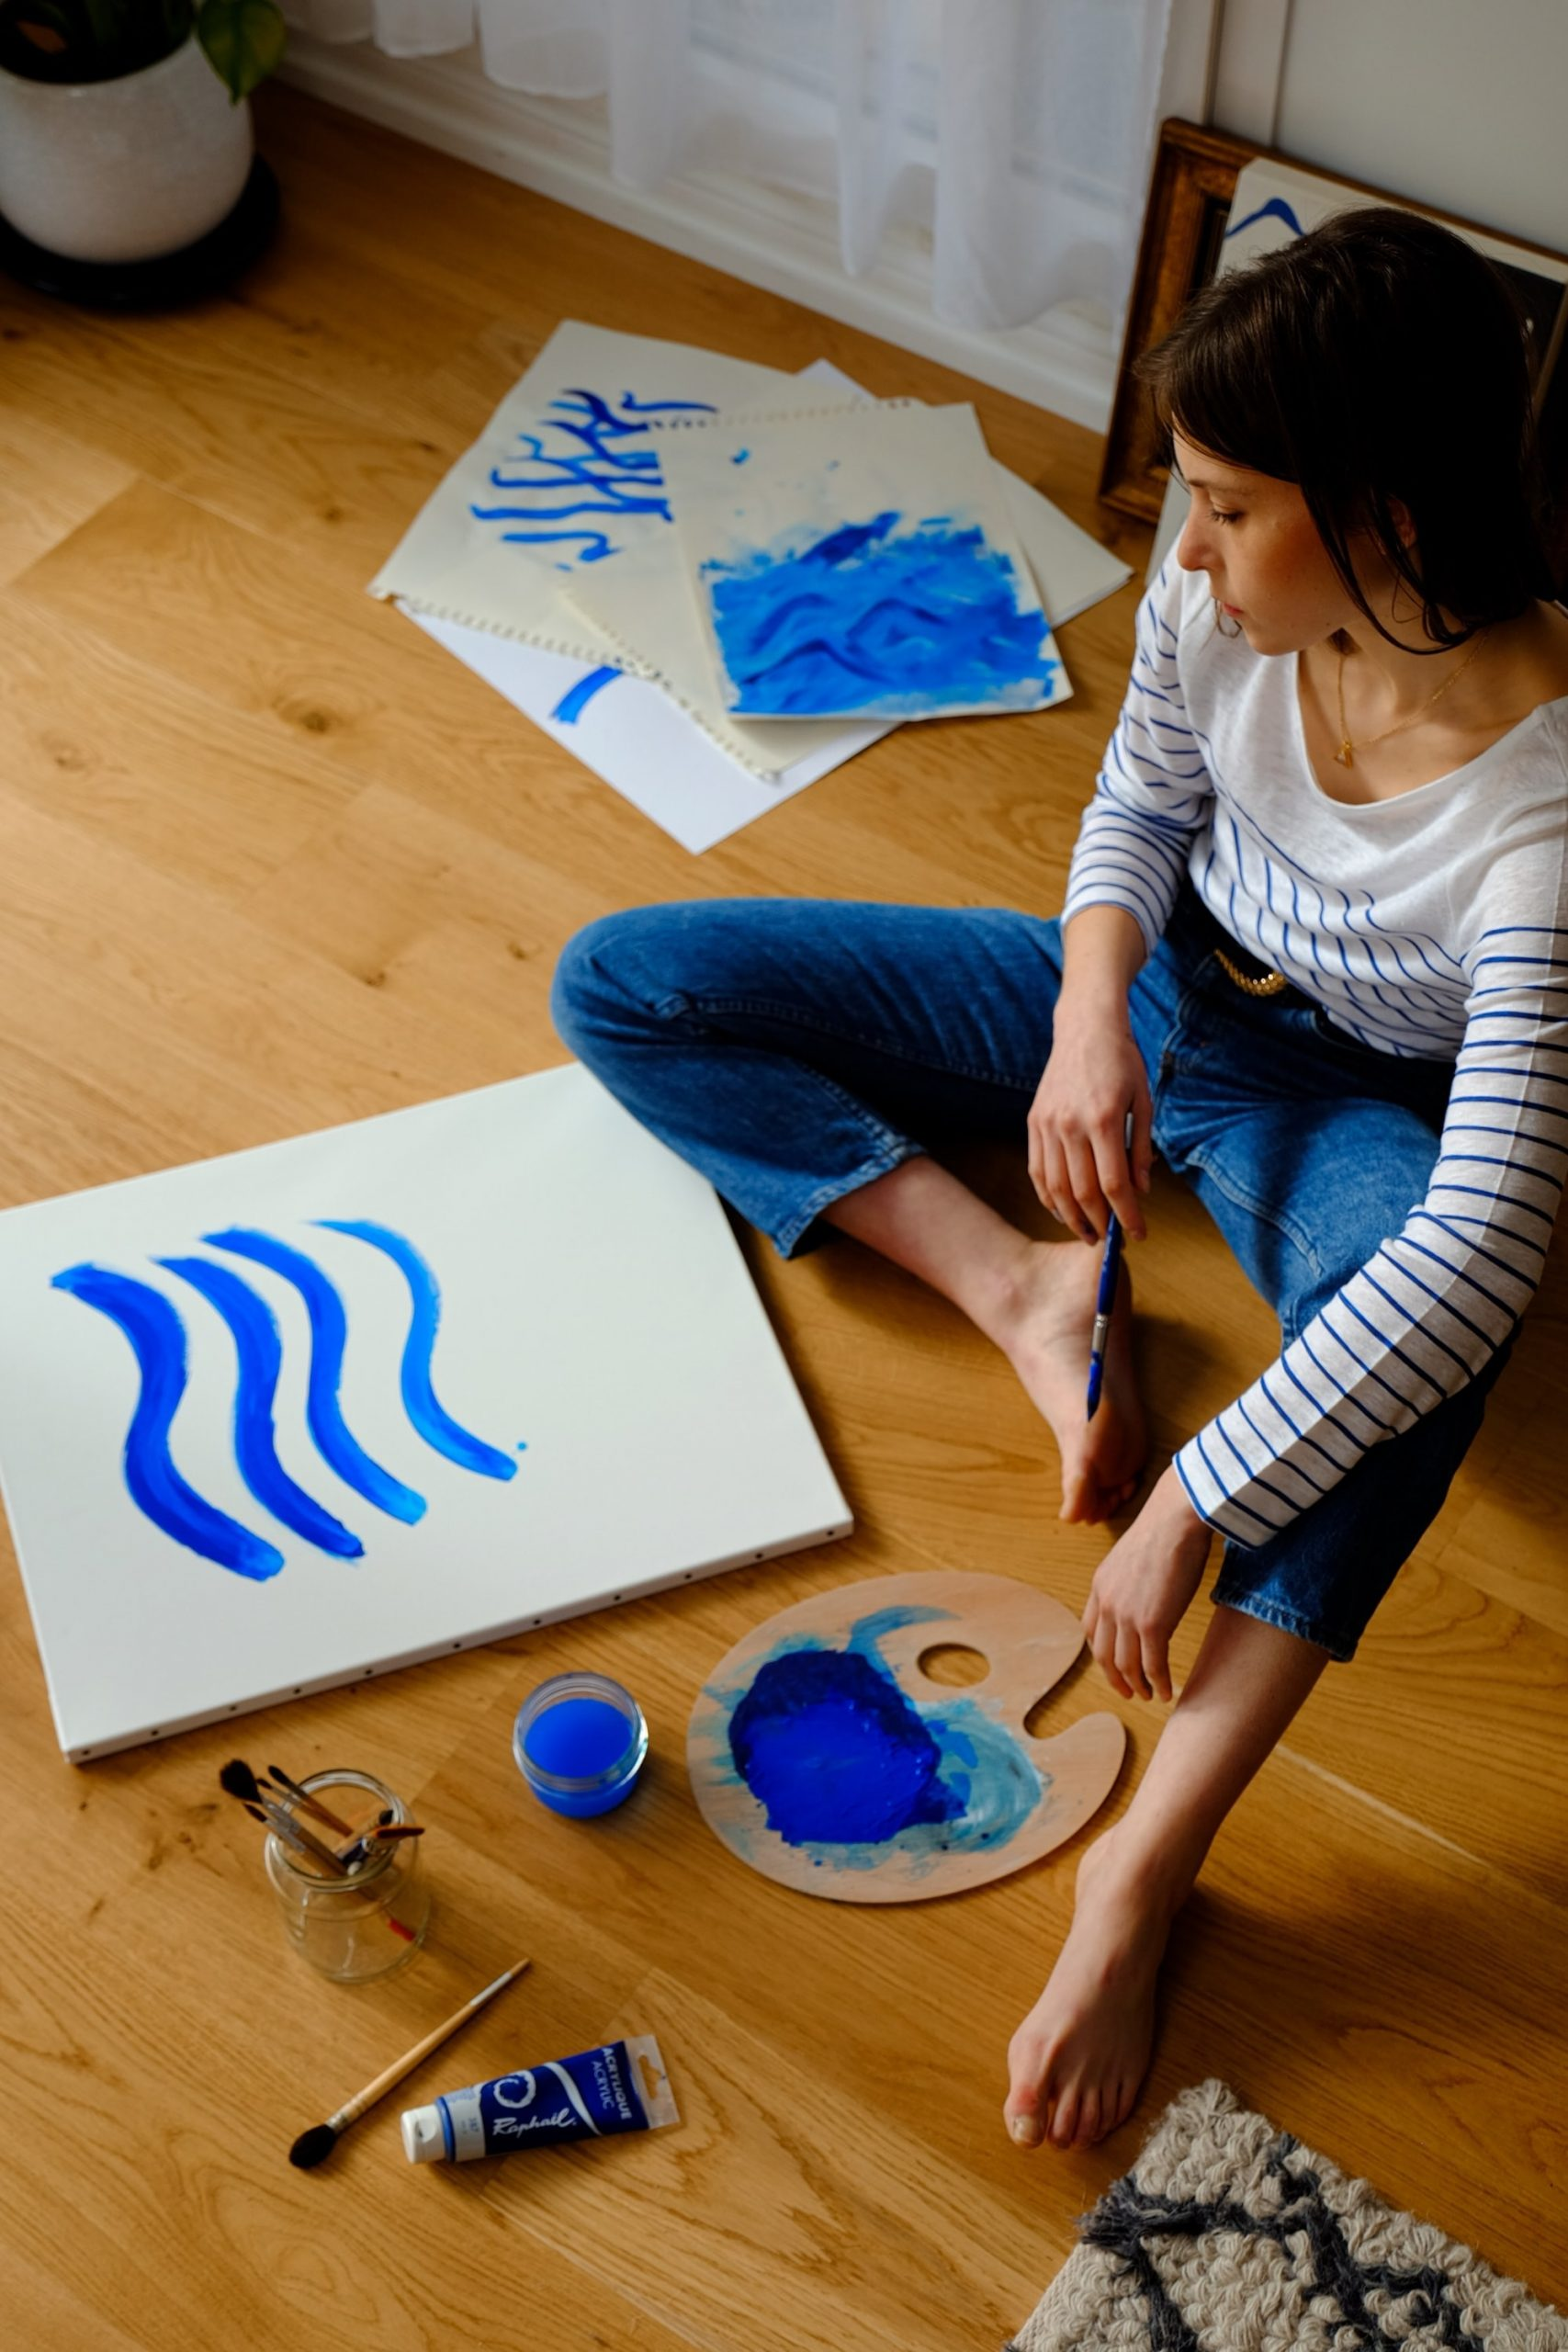 Artist trying out bright blue paint on canvas and paper